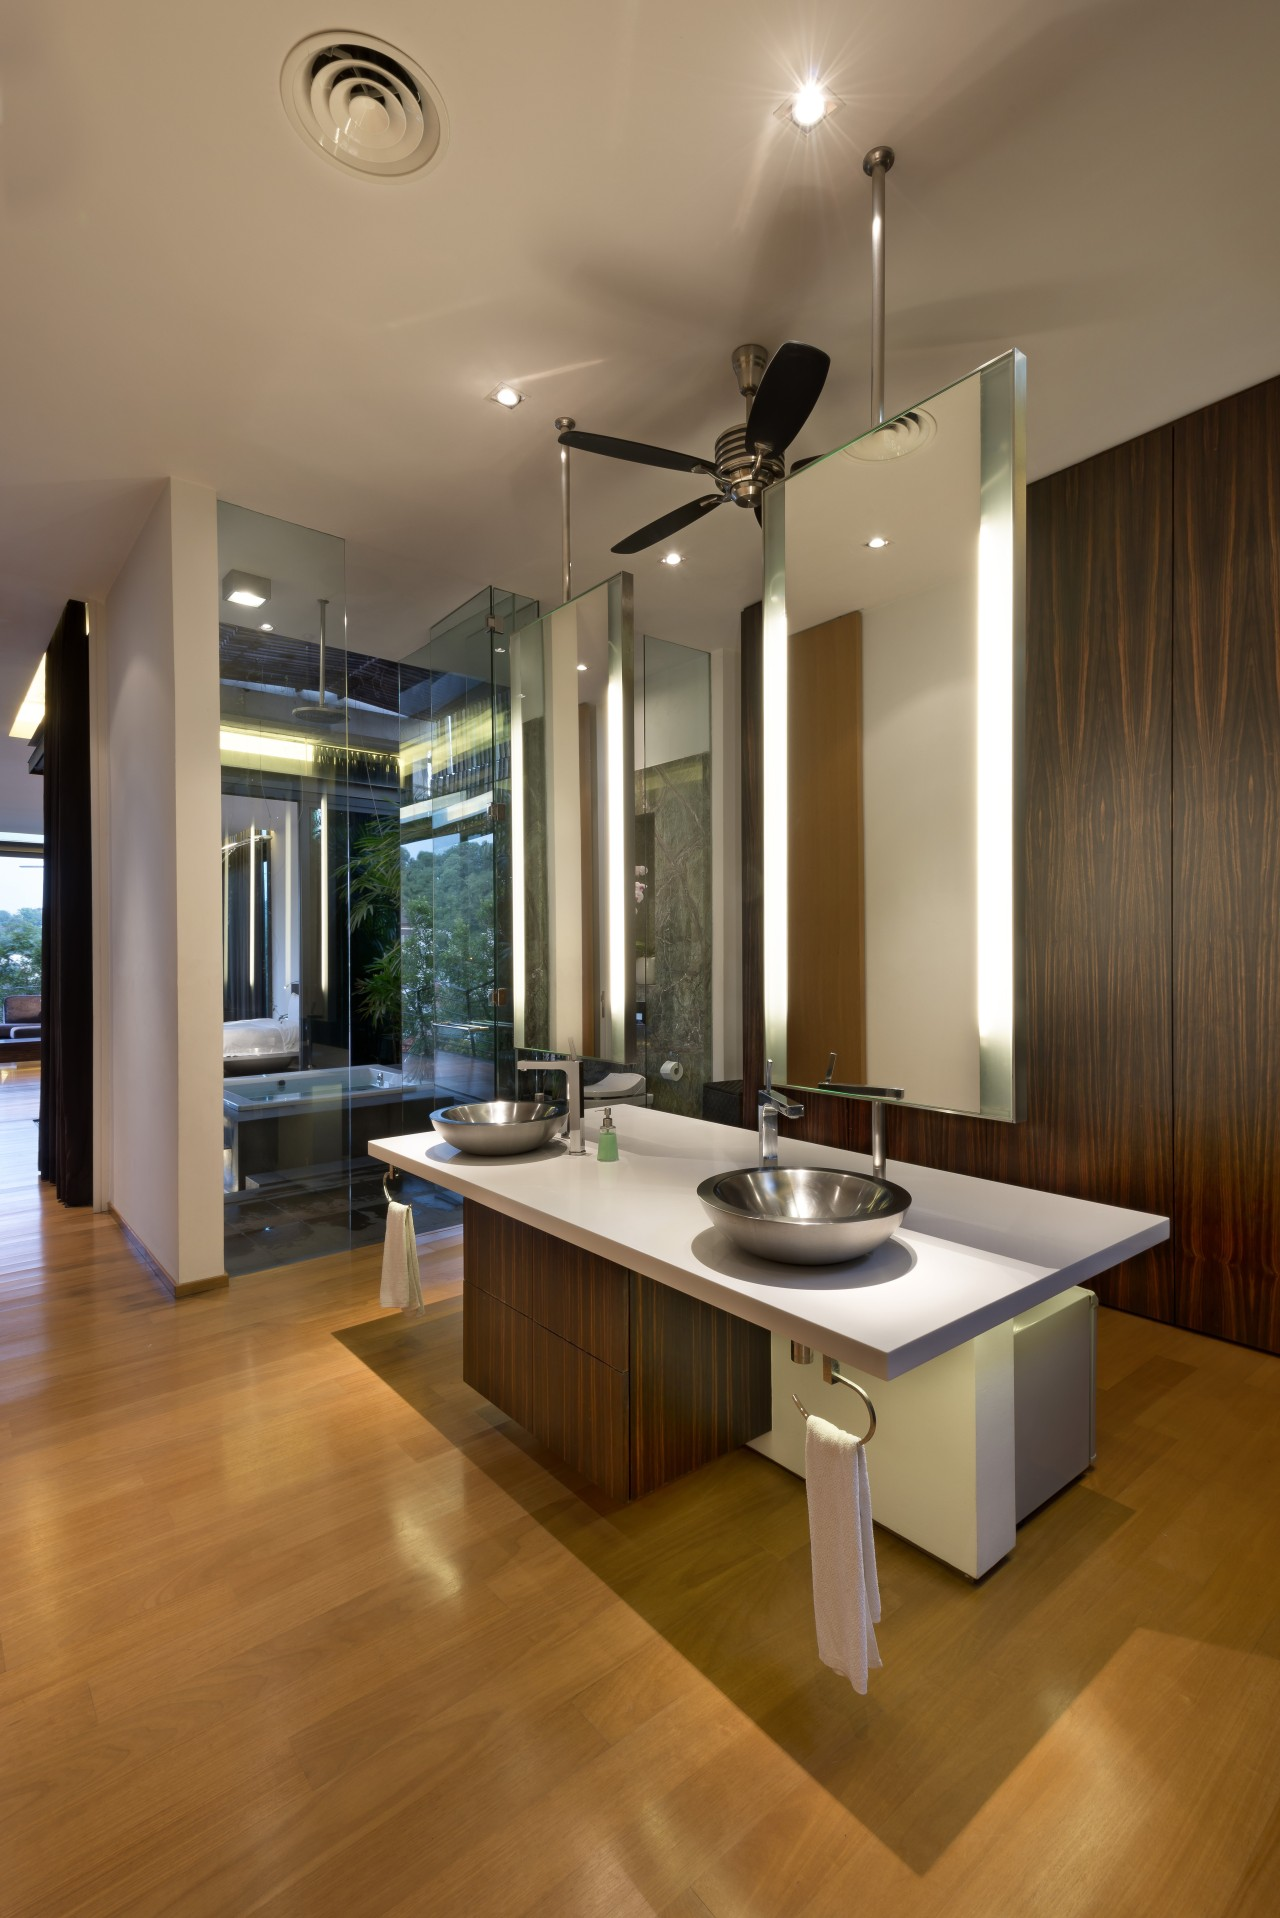 A freestanding, double-sided vanity unit appears suspended within ceiling, countertop, floor, flooring, hardwood, interior design, kitchen, laminate flooring, living room, real estate, room, table, wood flooring, brown